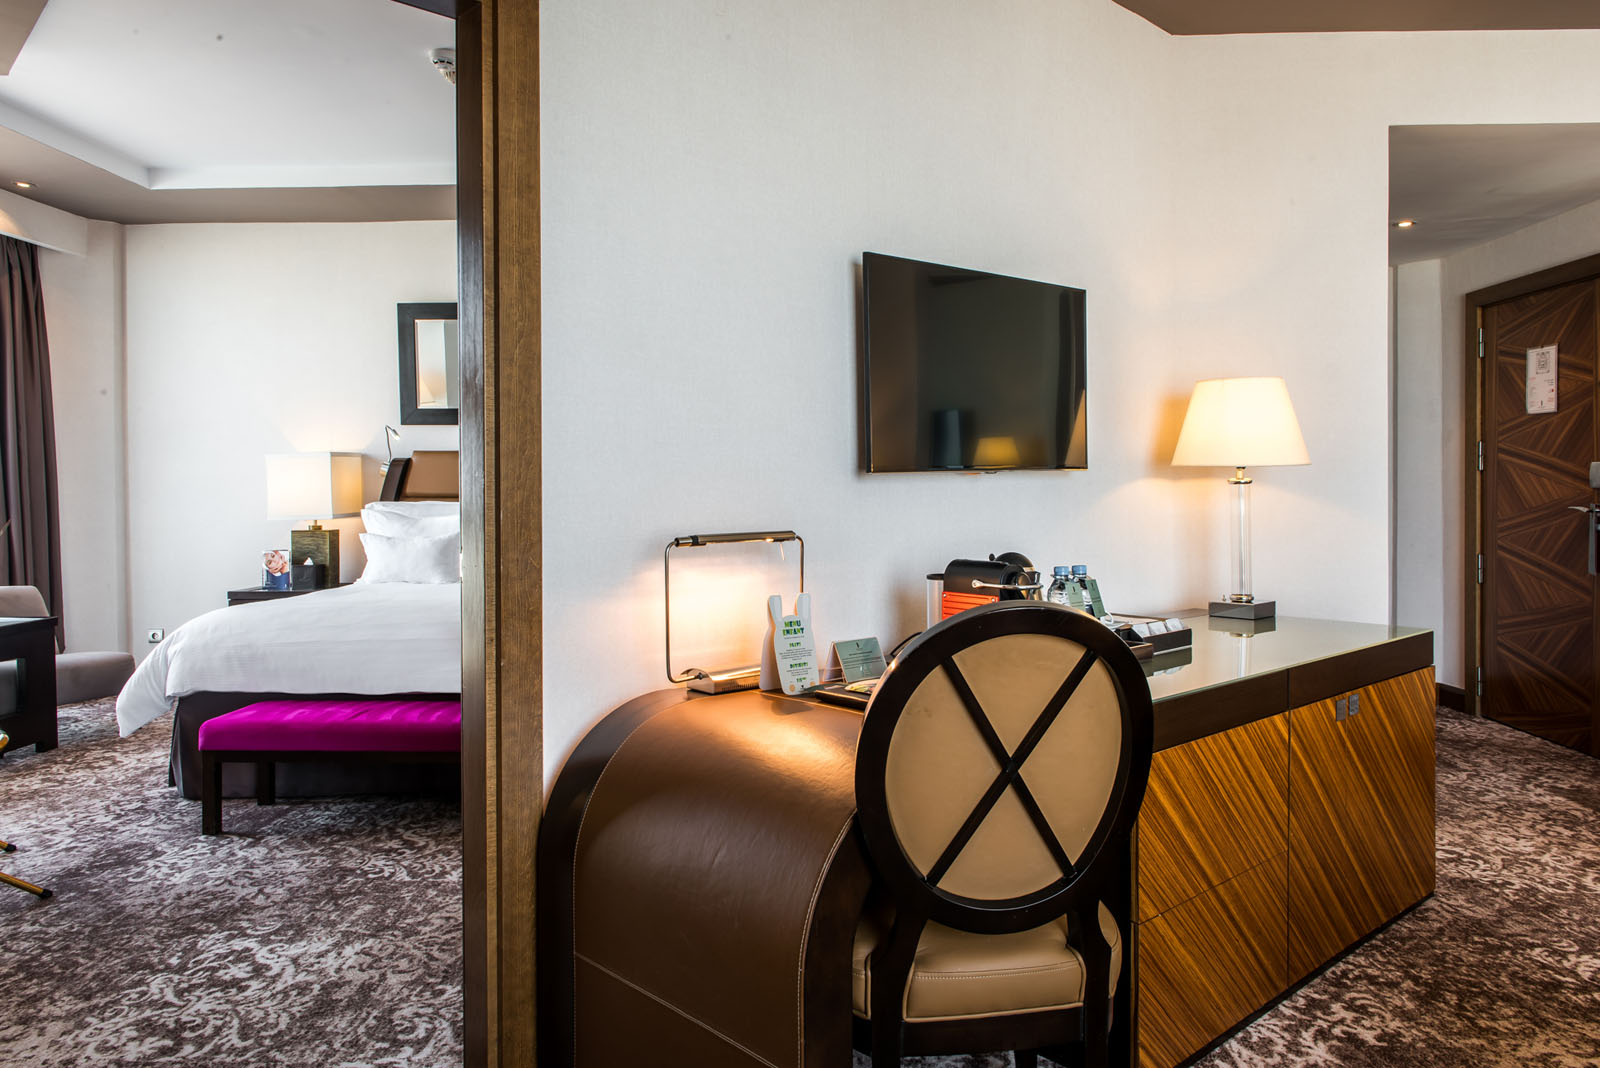 One-bedroom Suite at Kenzi Tower Hotel in central Casablanca, Mo